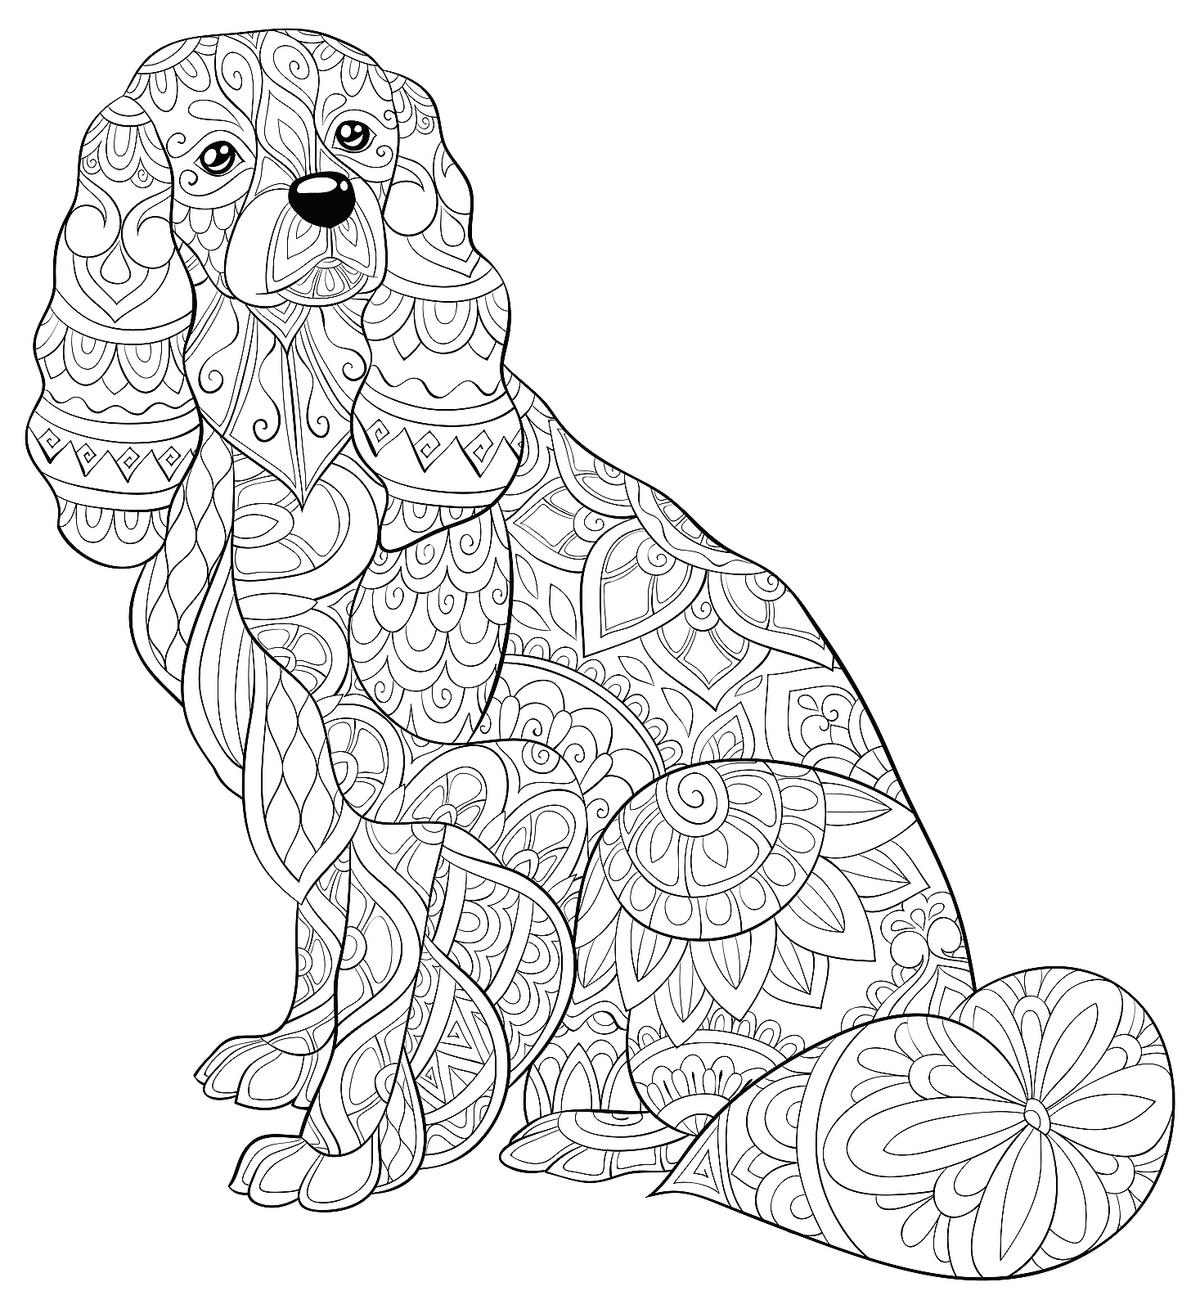 coloring sheet dog beagle coloring pages best coloring pages for kids coloring sheet dog